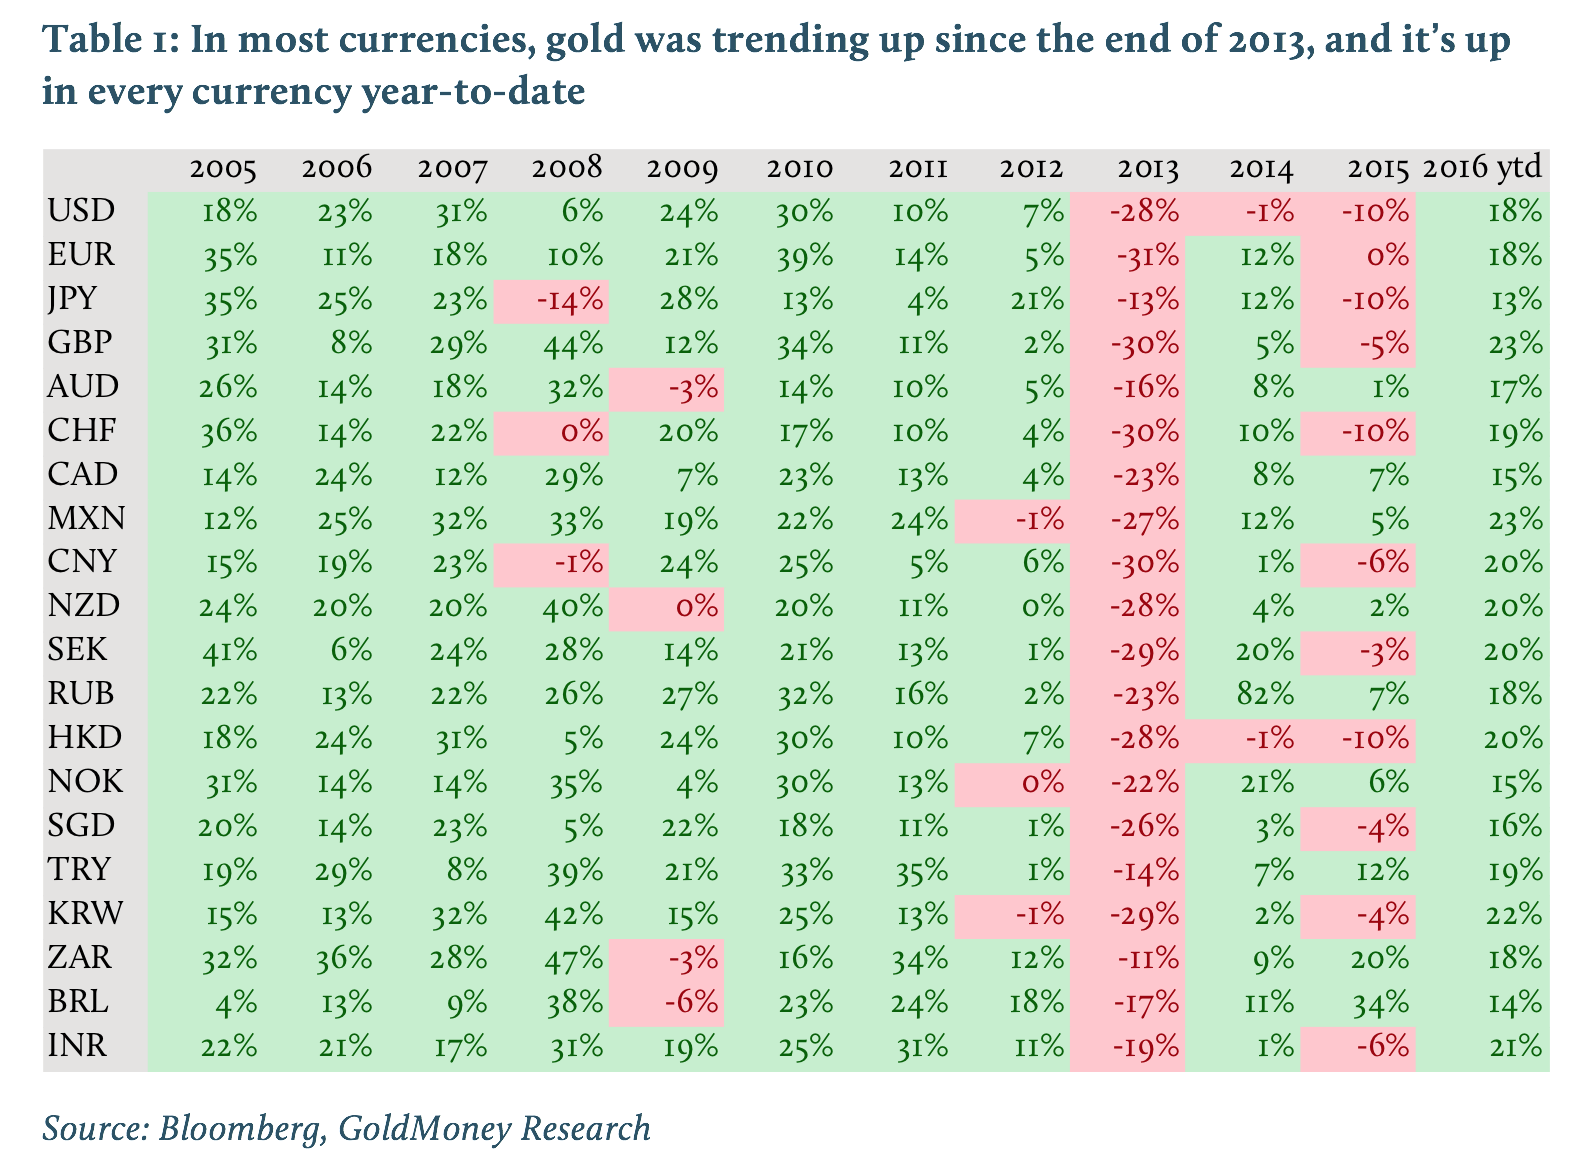 In most currencies, gold was trending up since the end of 2013, and it's up in every currency year-to-date